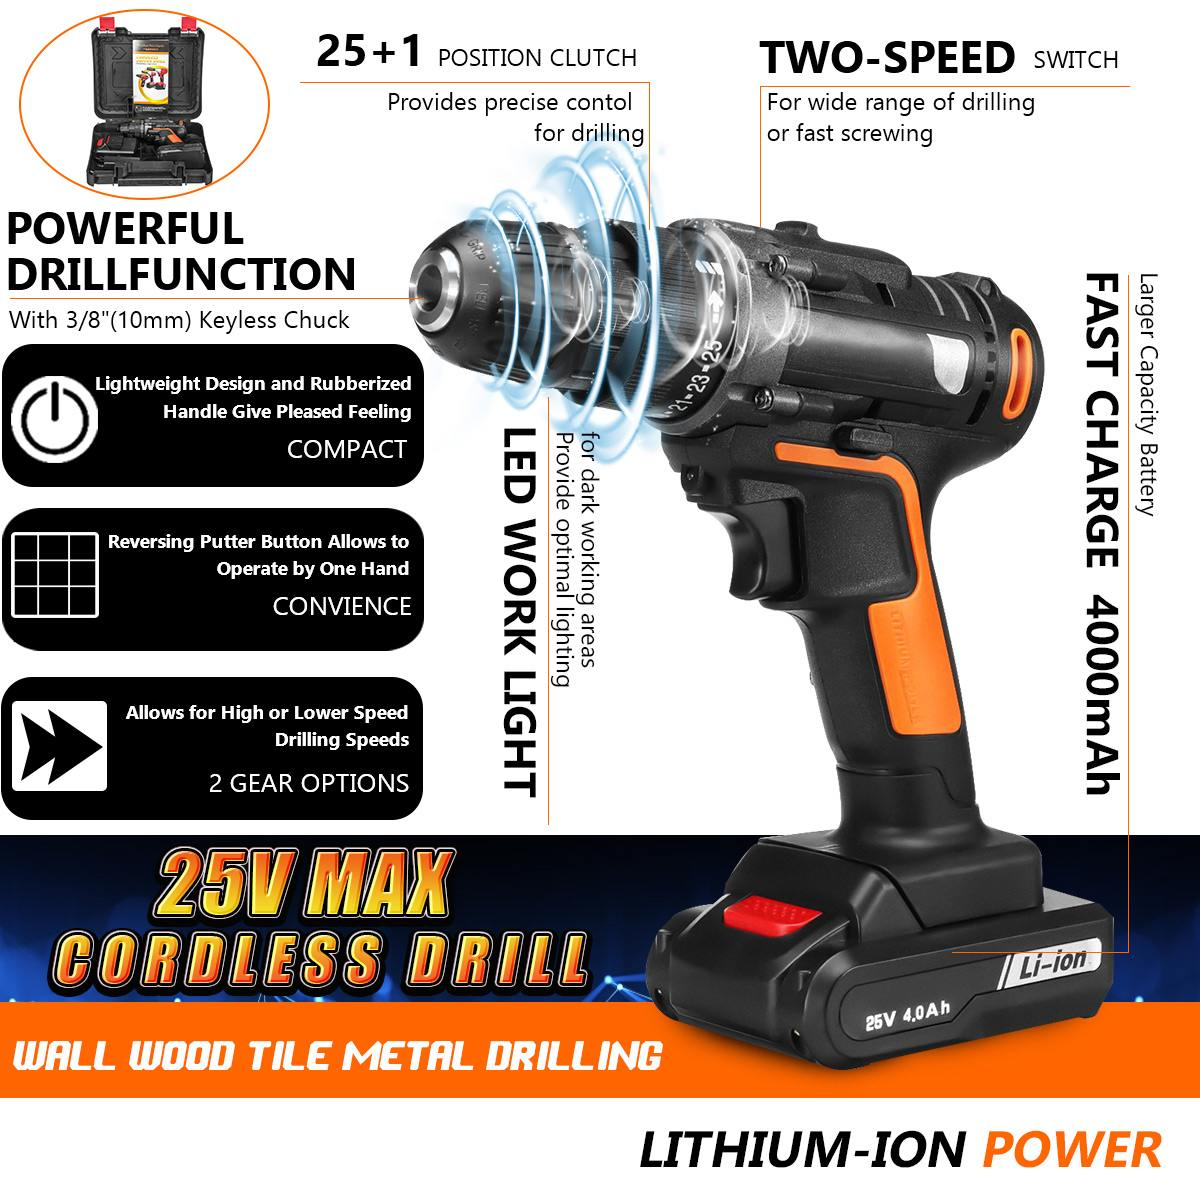 25V 48Nm Mini Electric Screwdriver Cordless Drill Rechargeable Max Torque 3/8 Chuck Wireless Power Driver 2 Li-Battery Kit25V 48Nm Mini Electric Screwdriver Cordless Drill Rechargeable Max Torque 3/8 Chuck Wireless Power Driver 2 Li-Battery Kit